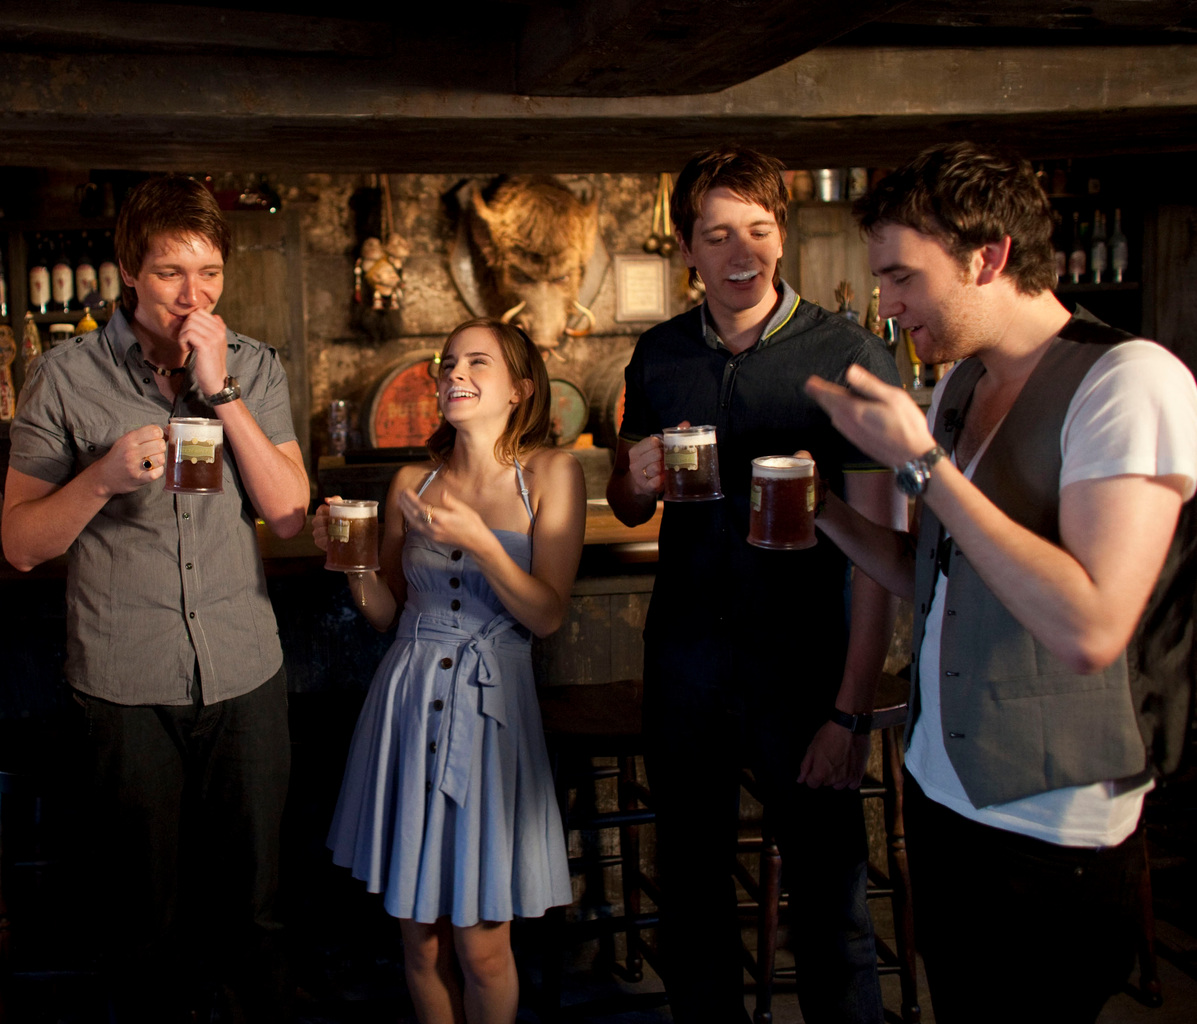 This photo provided by Universal Studios shows stars James Phelps, left, Emma Watson, second from left, Oliver Phelps, second from right, and Matthew Lewis as they taste Butterbeer during a preview of The Wizarding World of Harry Potter theme park at Universal Orlando Resort in Orlando, Fla., Thursday, May 20, 2010.   (AP Photo/Universal Studios, Kevin Kolczynski)  NO SALES